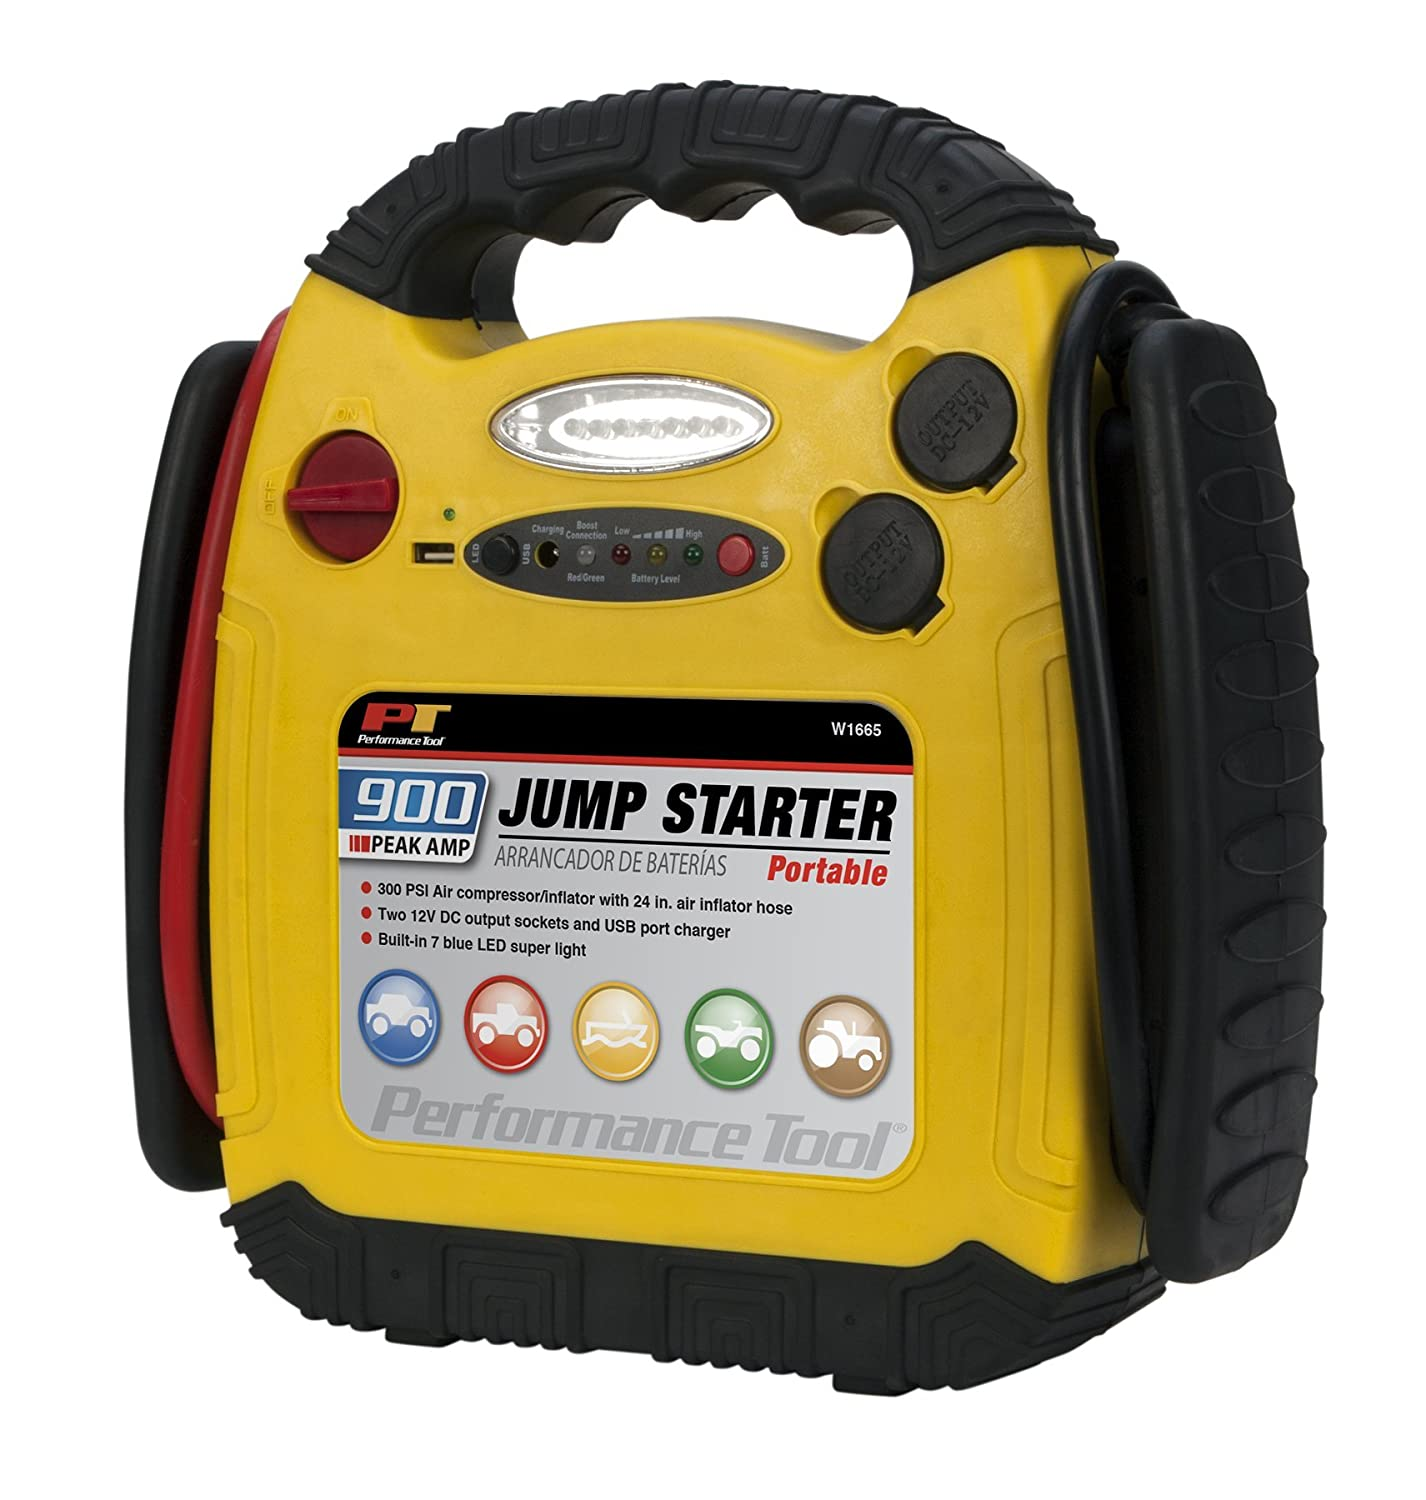 Performance Tool W1665 900 Amp Jump Starter